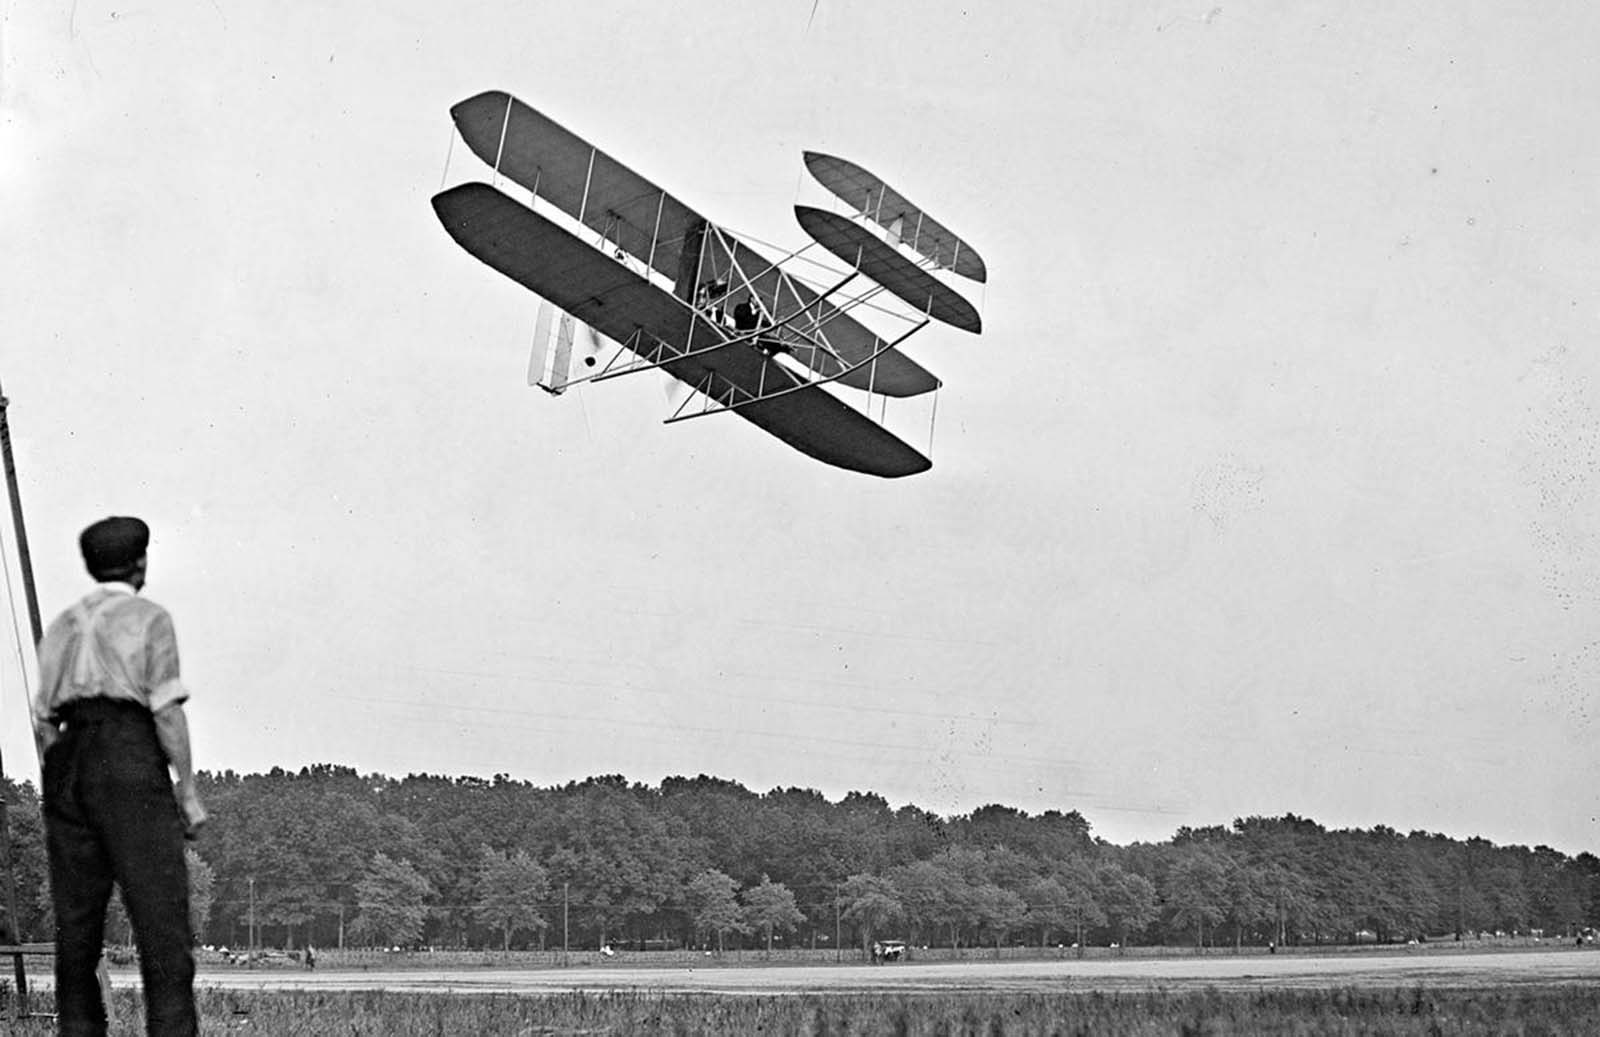 Orville Wright during proving flights for the U.S. Army at Fort Myer, Virginia, in July of 1909. The Wright brothers were able to sell their airplane to the Army's Aeronautical Division, U.S. Signal Corps